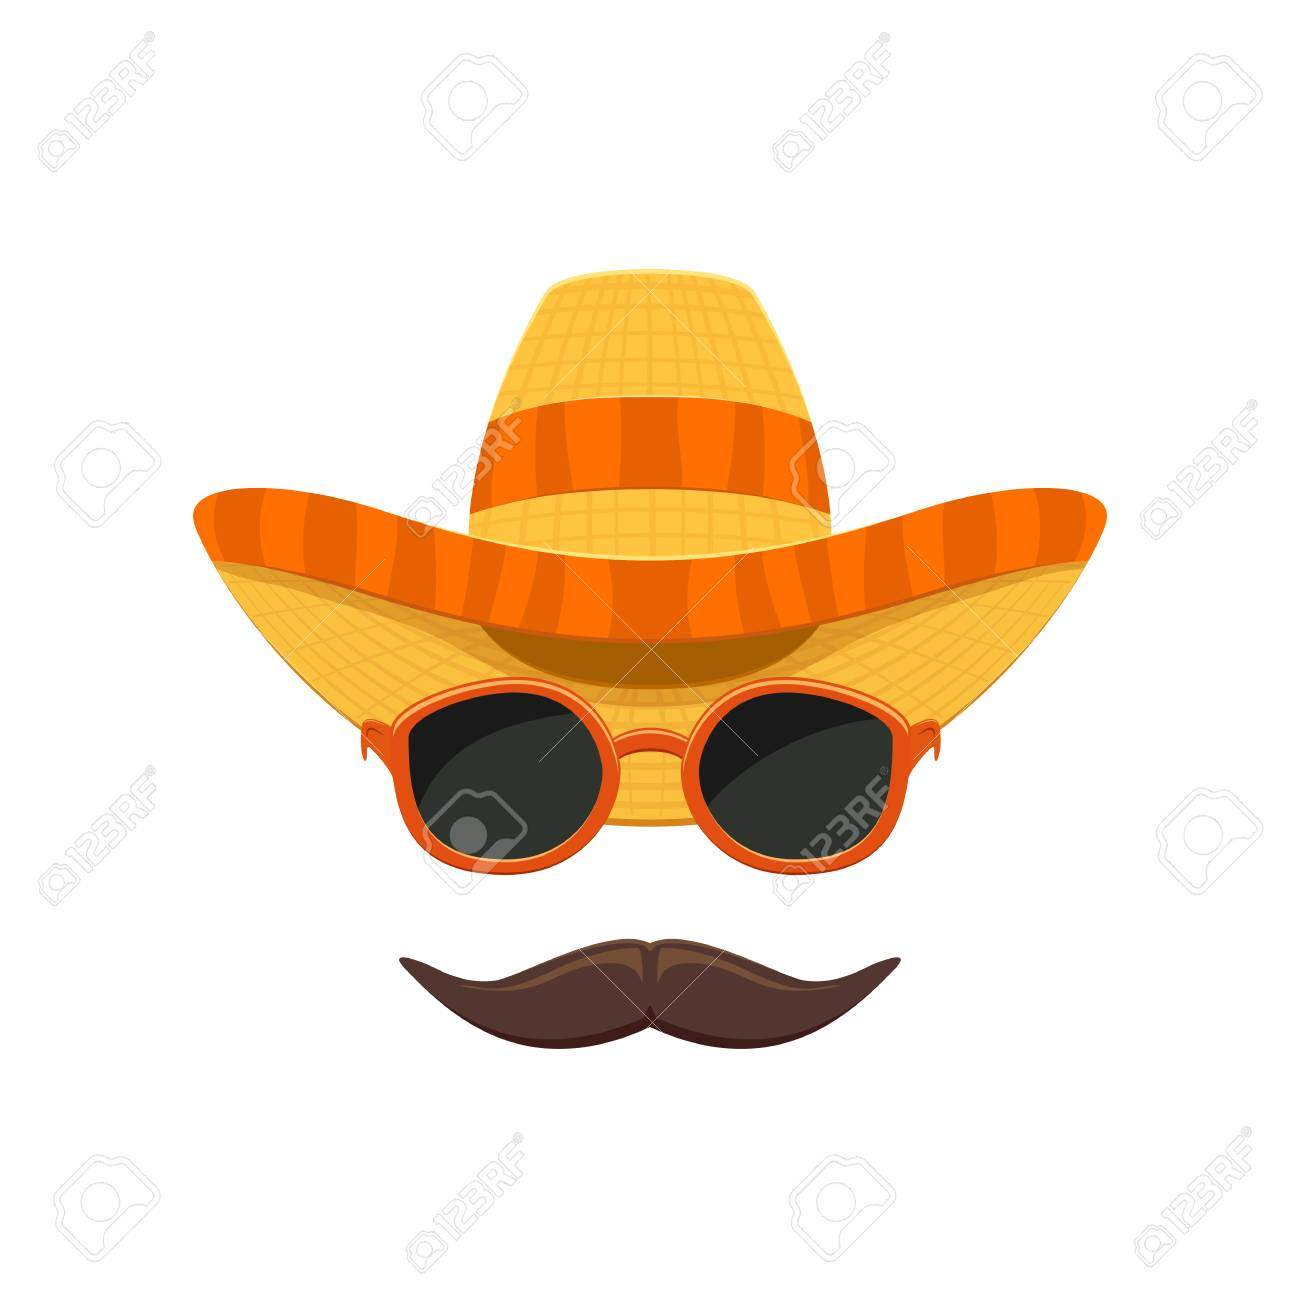 48d2e440900 Mexican sombrero hat with sunglasses and moustache for Cinco de Mayo  isolated on white background